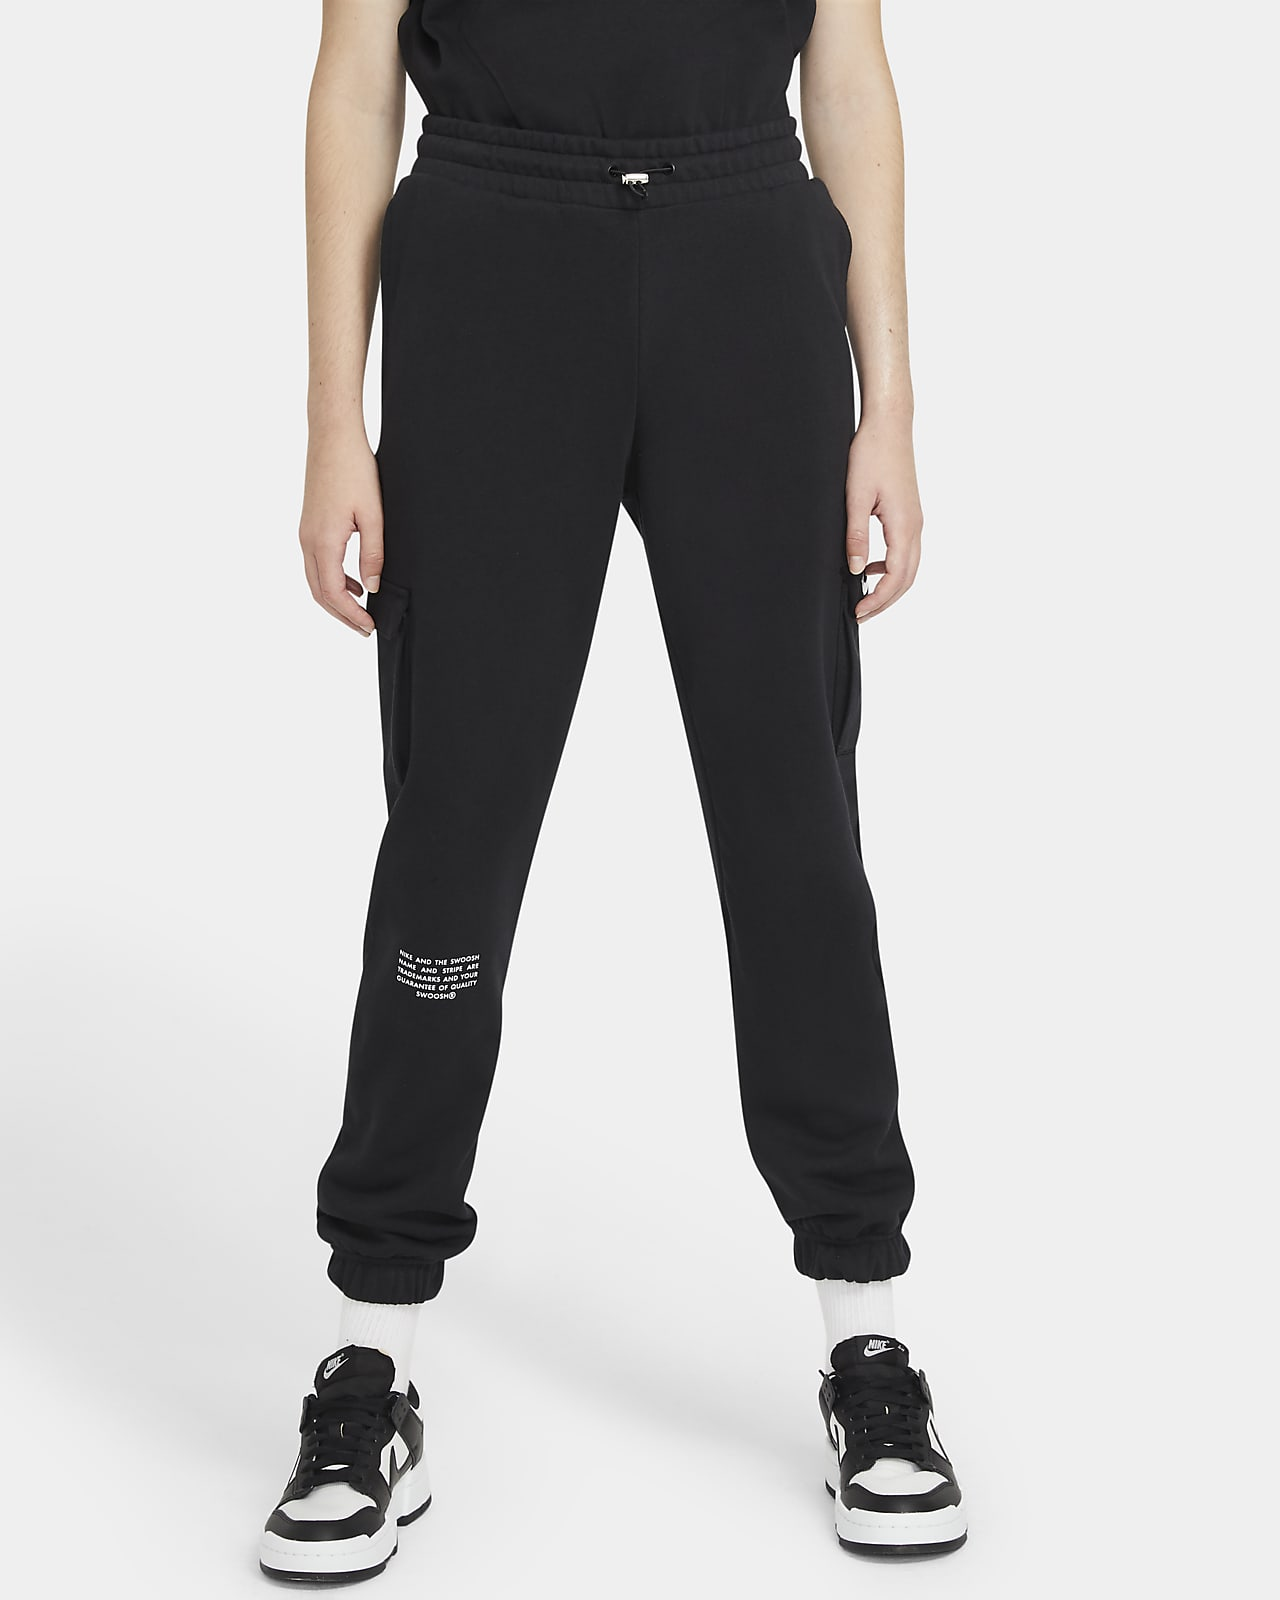 Nike Sportswear Swoosh Women's French Terry Trousers